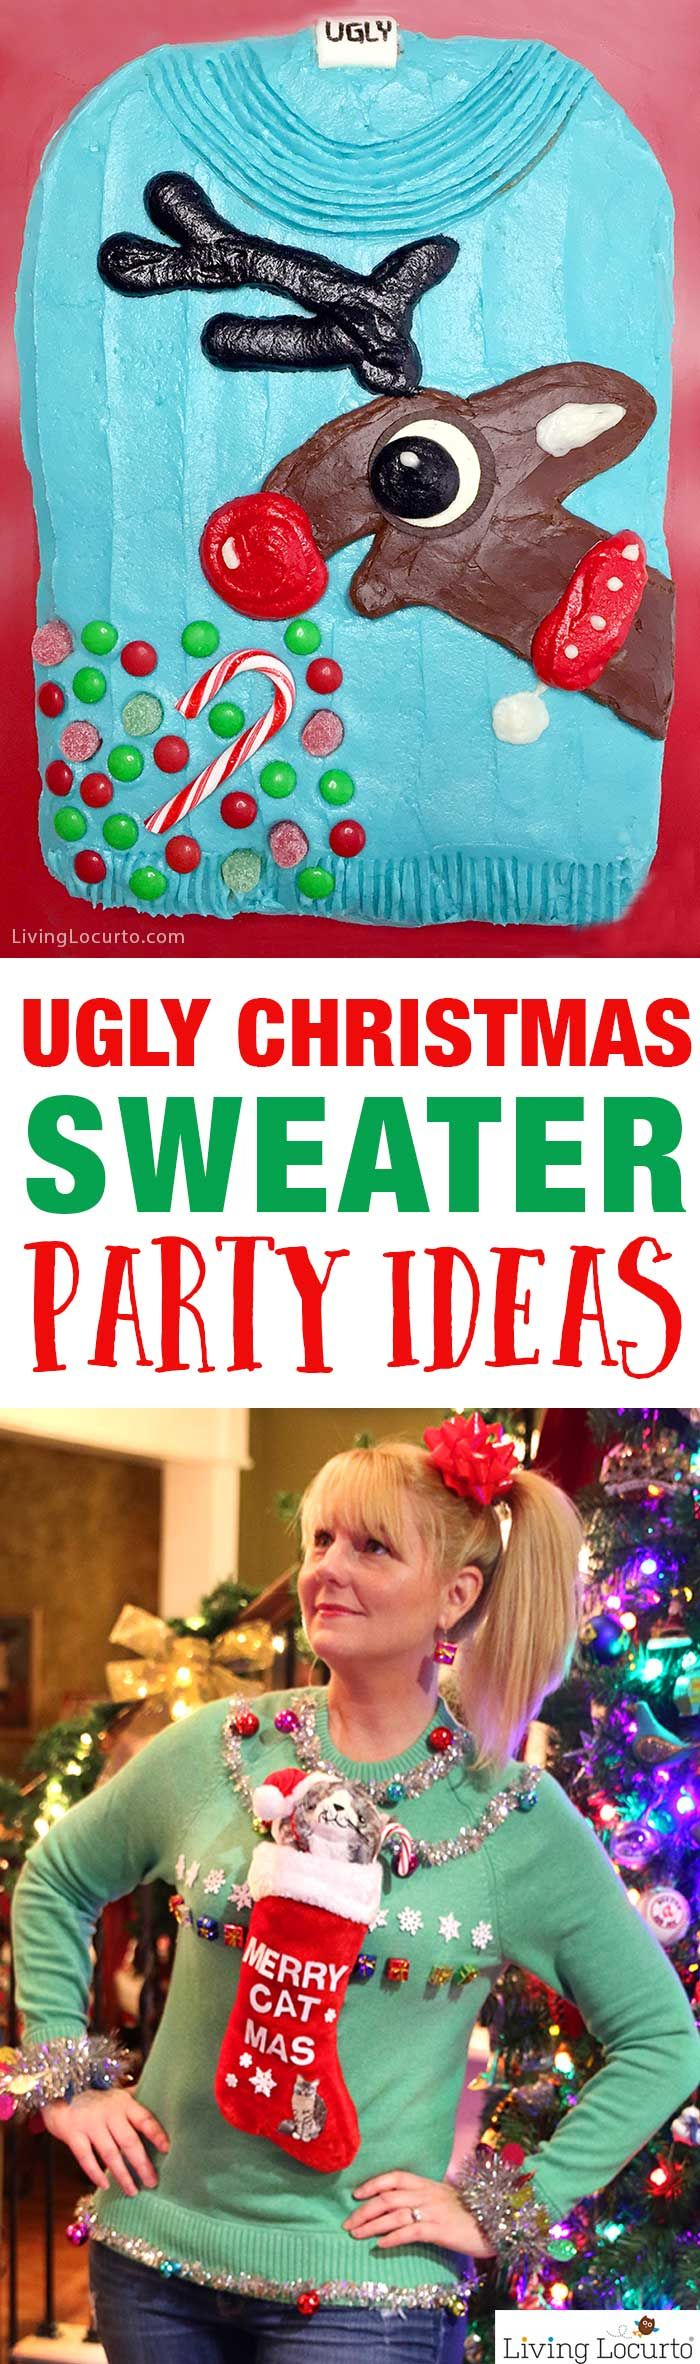 Funny Ugly Christmas Sweater Party Ideas! How to make a Reindeer Ugly Christmas Sweater Cake and more. Funny dessert recipe idea for a Tacky Ugly Christmas Sweater Party! A Reindeer Ugly Christmas Sweater Cake is an easy to make funny dessert for a Tacky Ugly Christmas Sweater Party! Rudolph vomits candy. Love this crazy cat lady sweater. LivingLocurto.com #uglychristmassweater #christmas